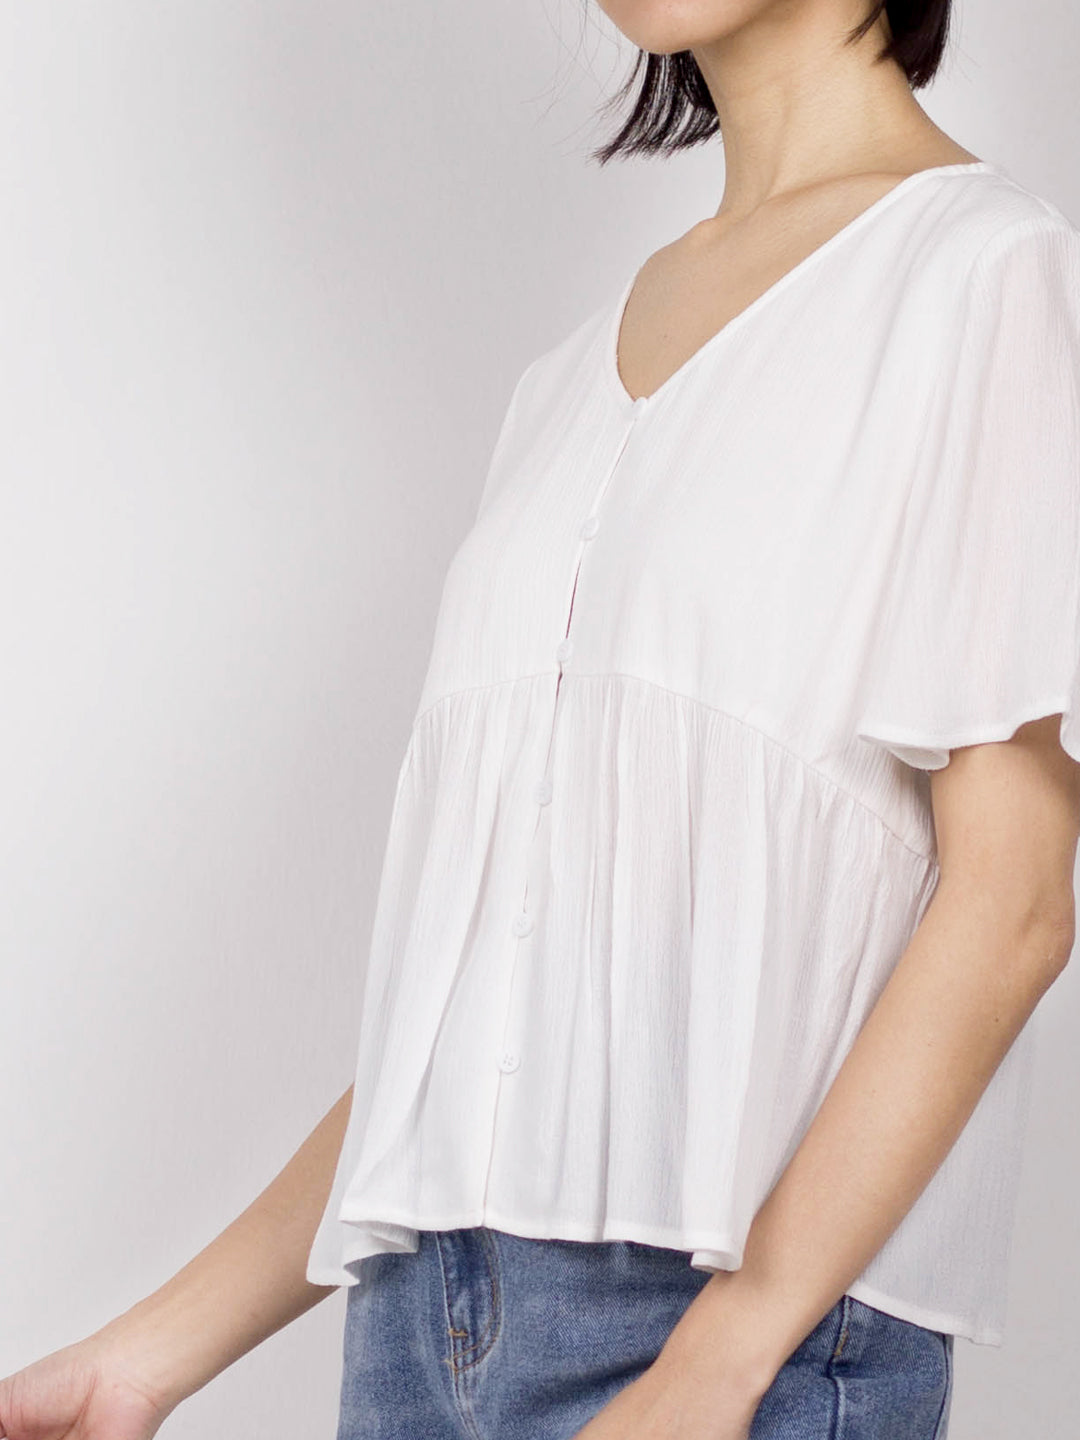 Women Short Sleeve Blouse - White